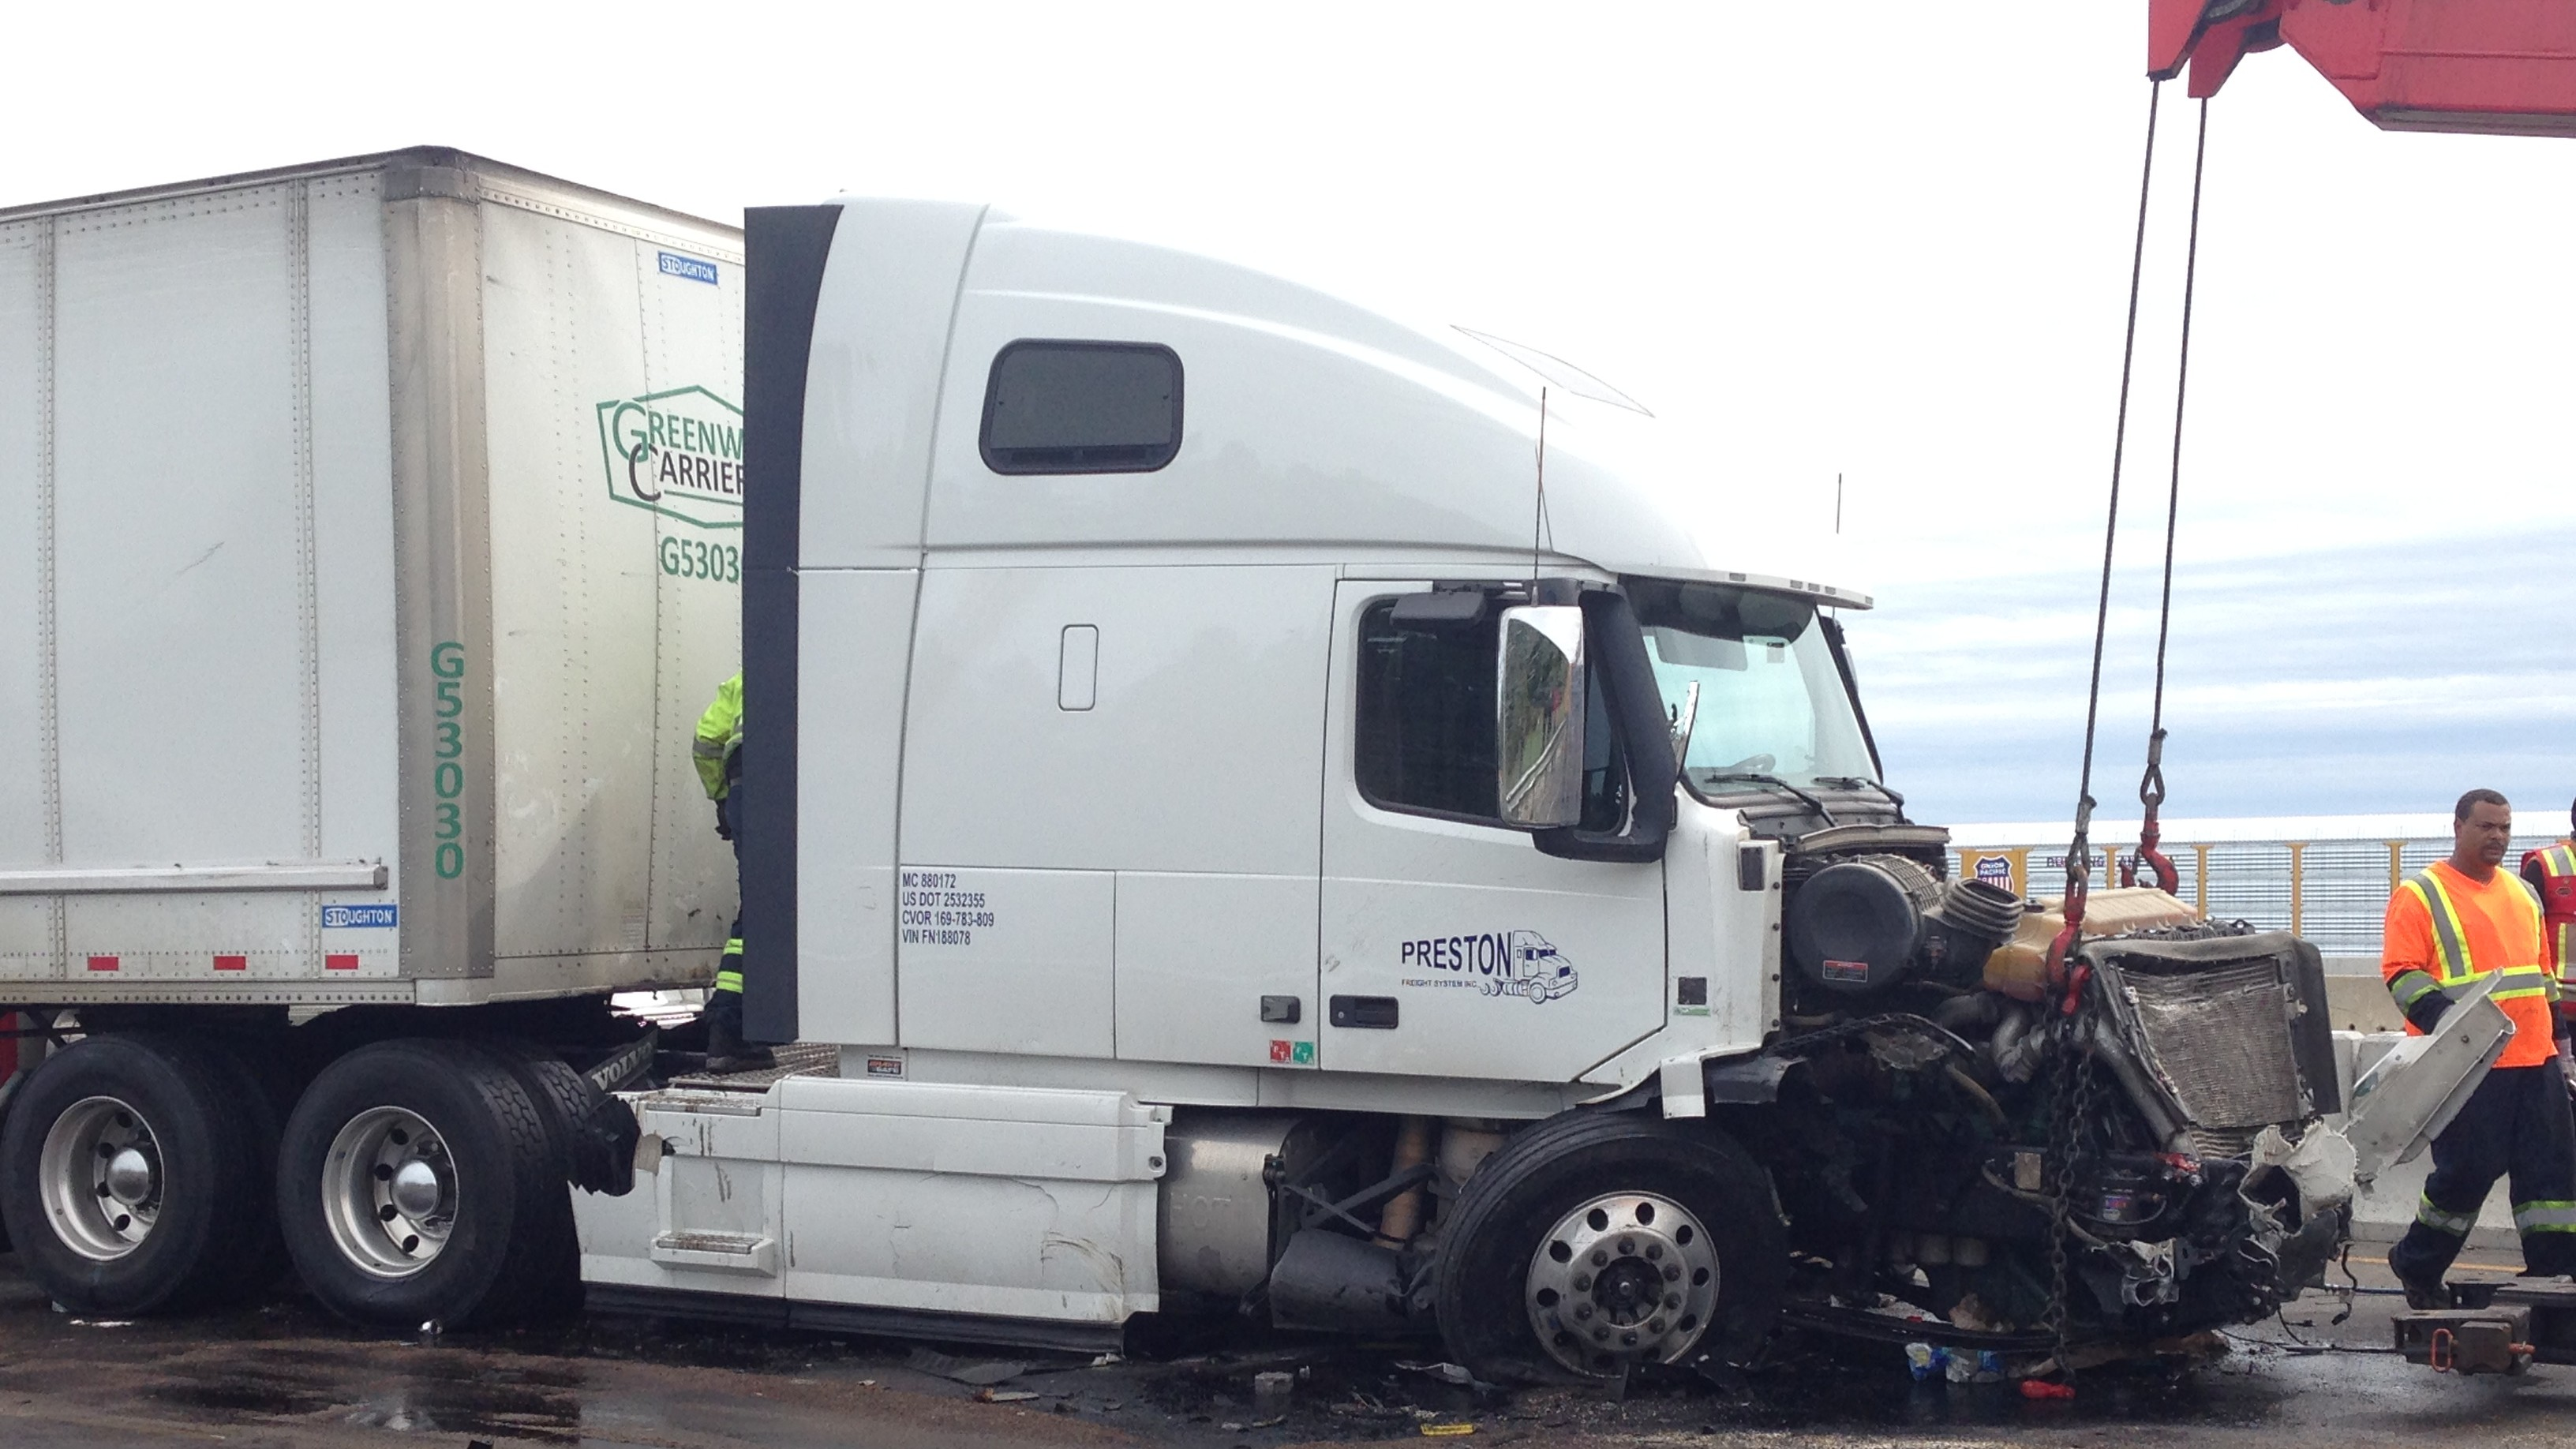 2 boys killed in Hwy. 401 crash were sons of high-ranking Mexican ...